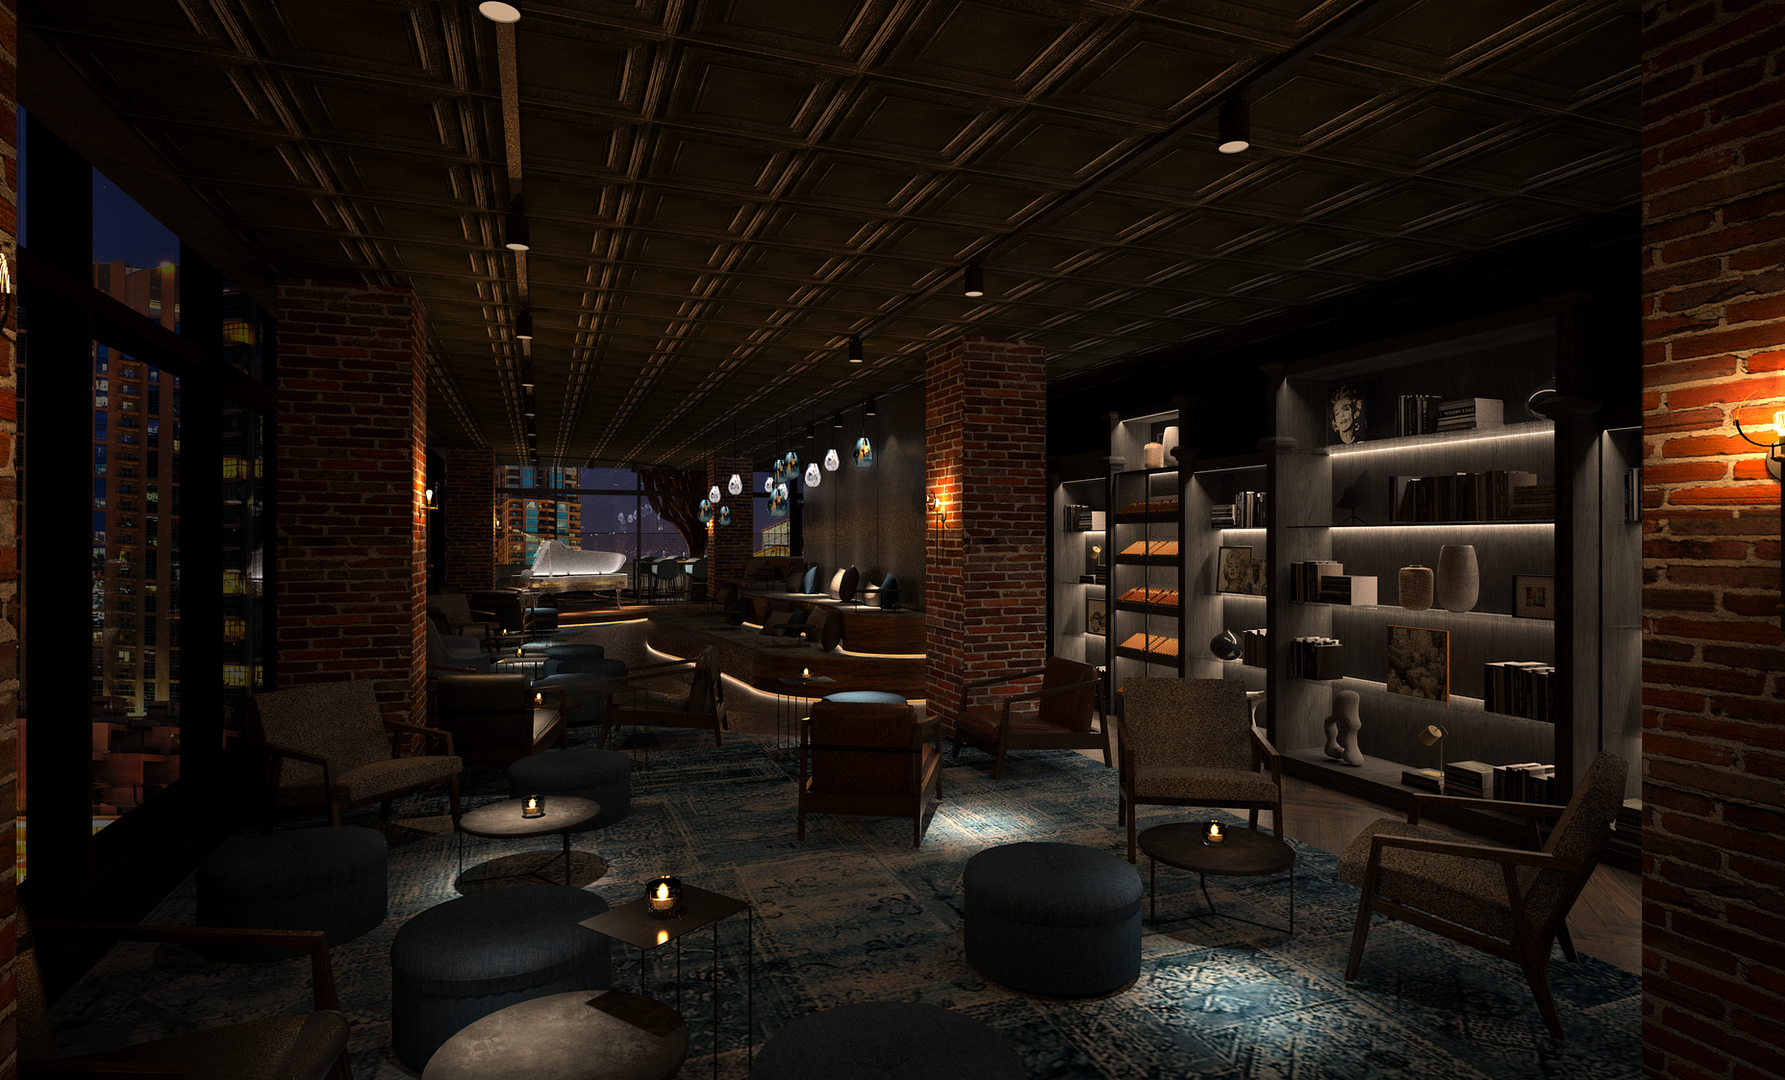 Connors - New York loft inspired apartment restaurant and bar